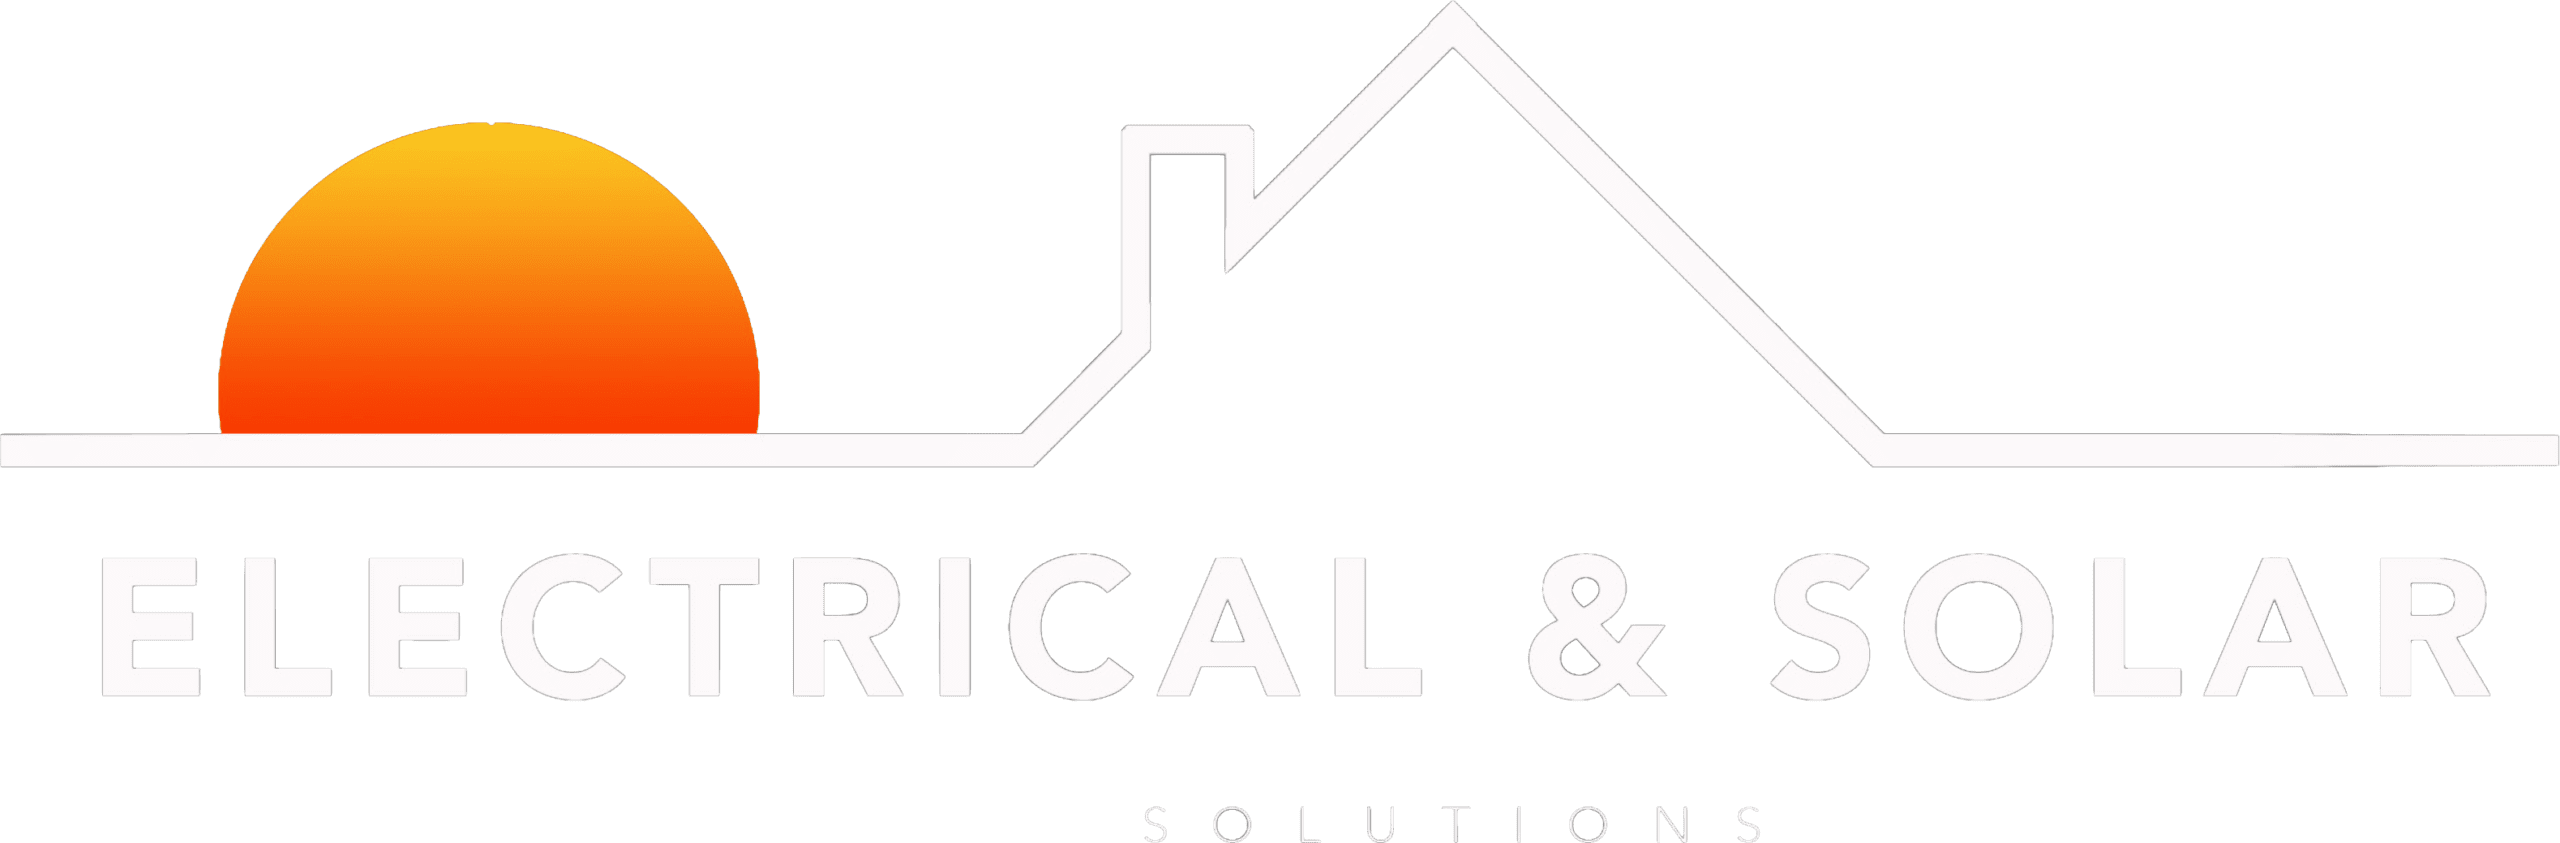 Electrical & Solar Solutions